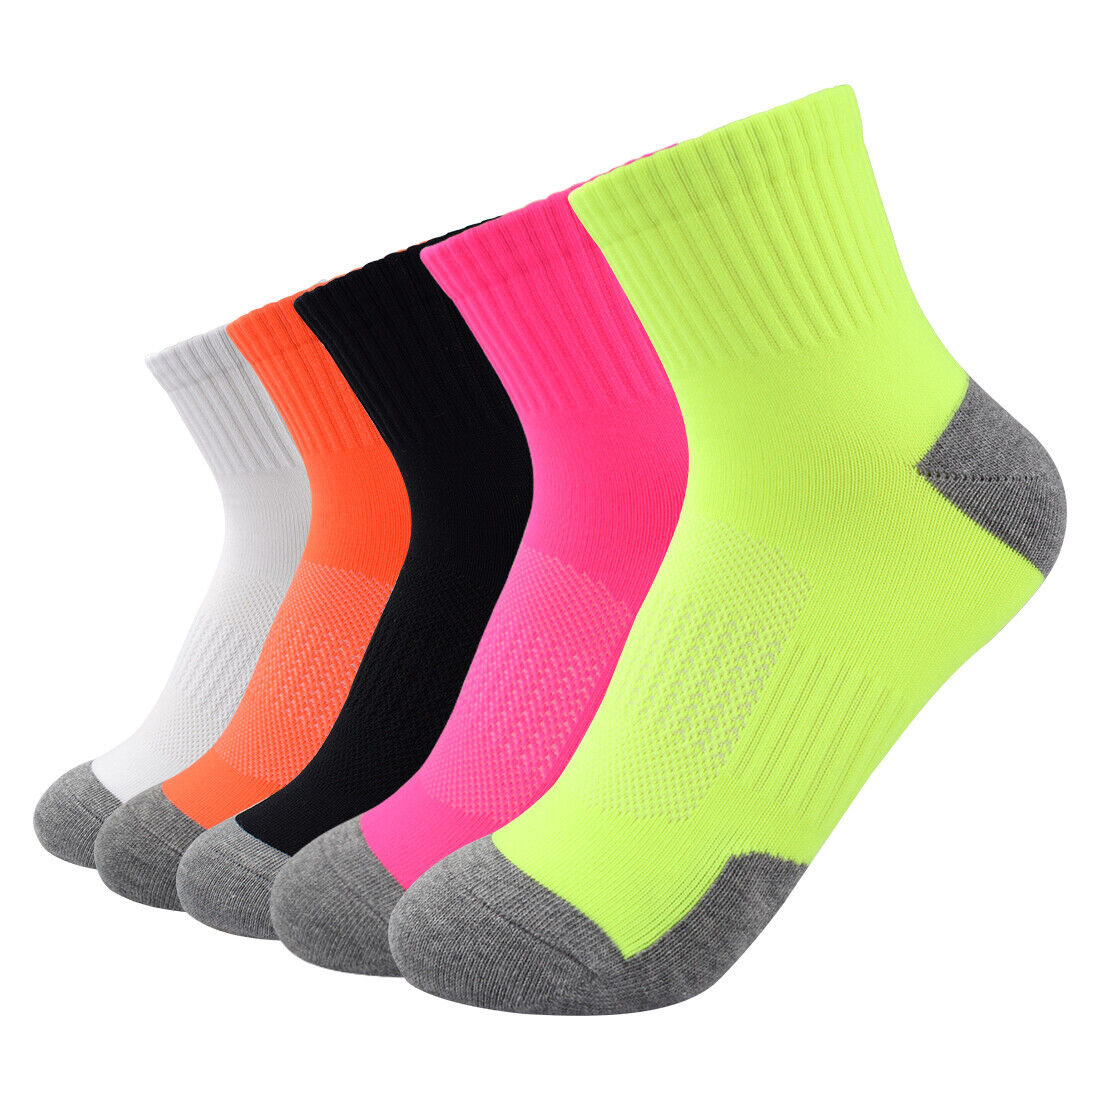 Unisex High Ankle Cushion Crew Socks Bright Picture Casual Sport Socks